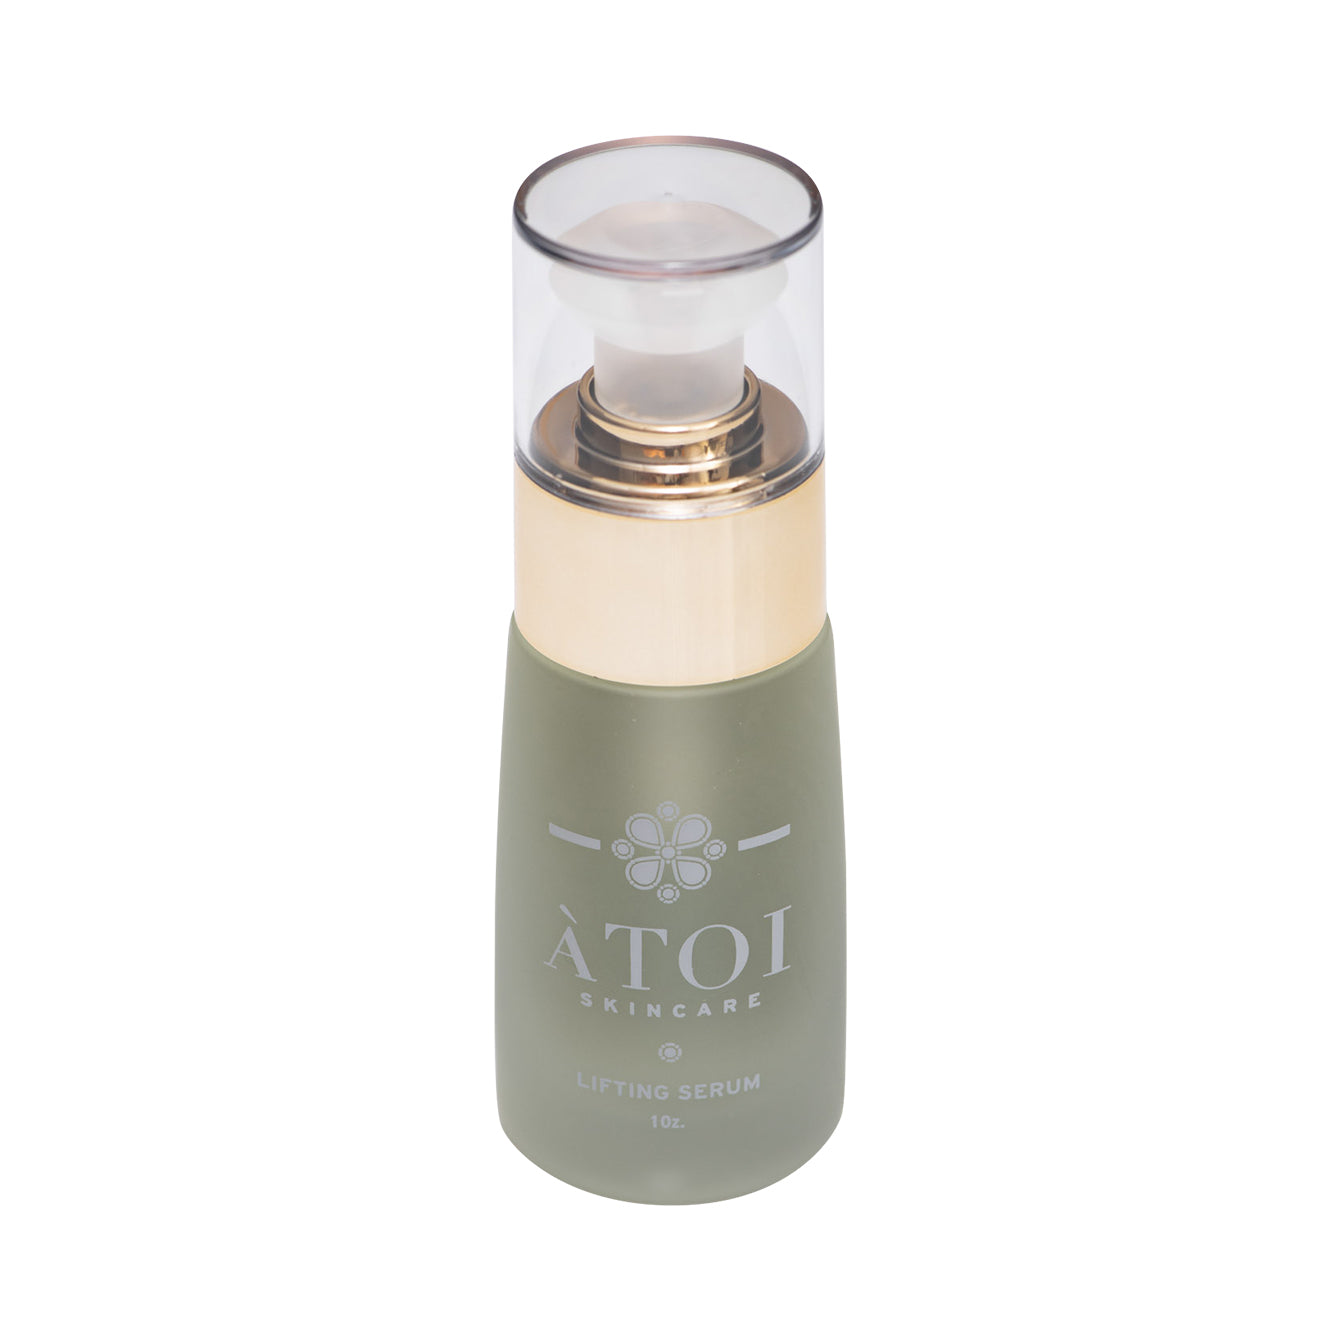 ATOI Lifting Serum for Dry Skin, Sensitive Skin and Fine Lines